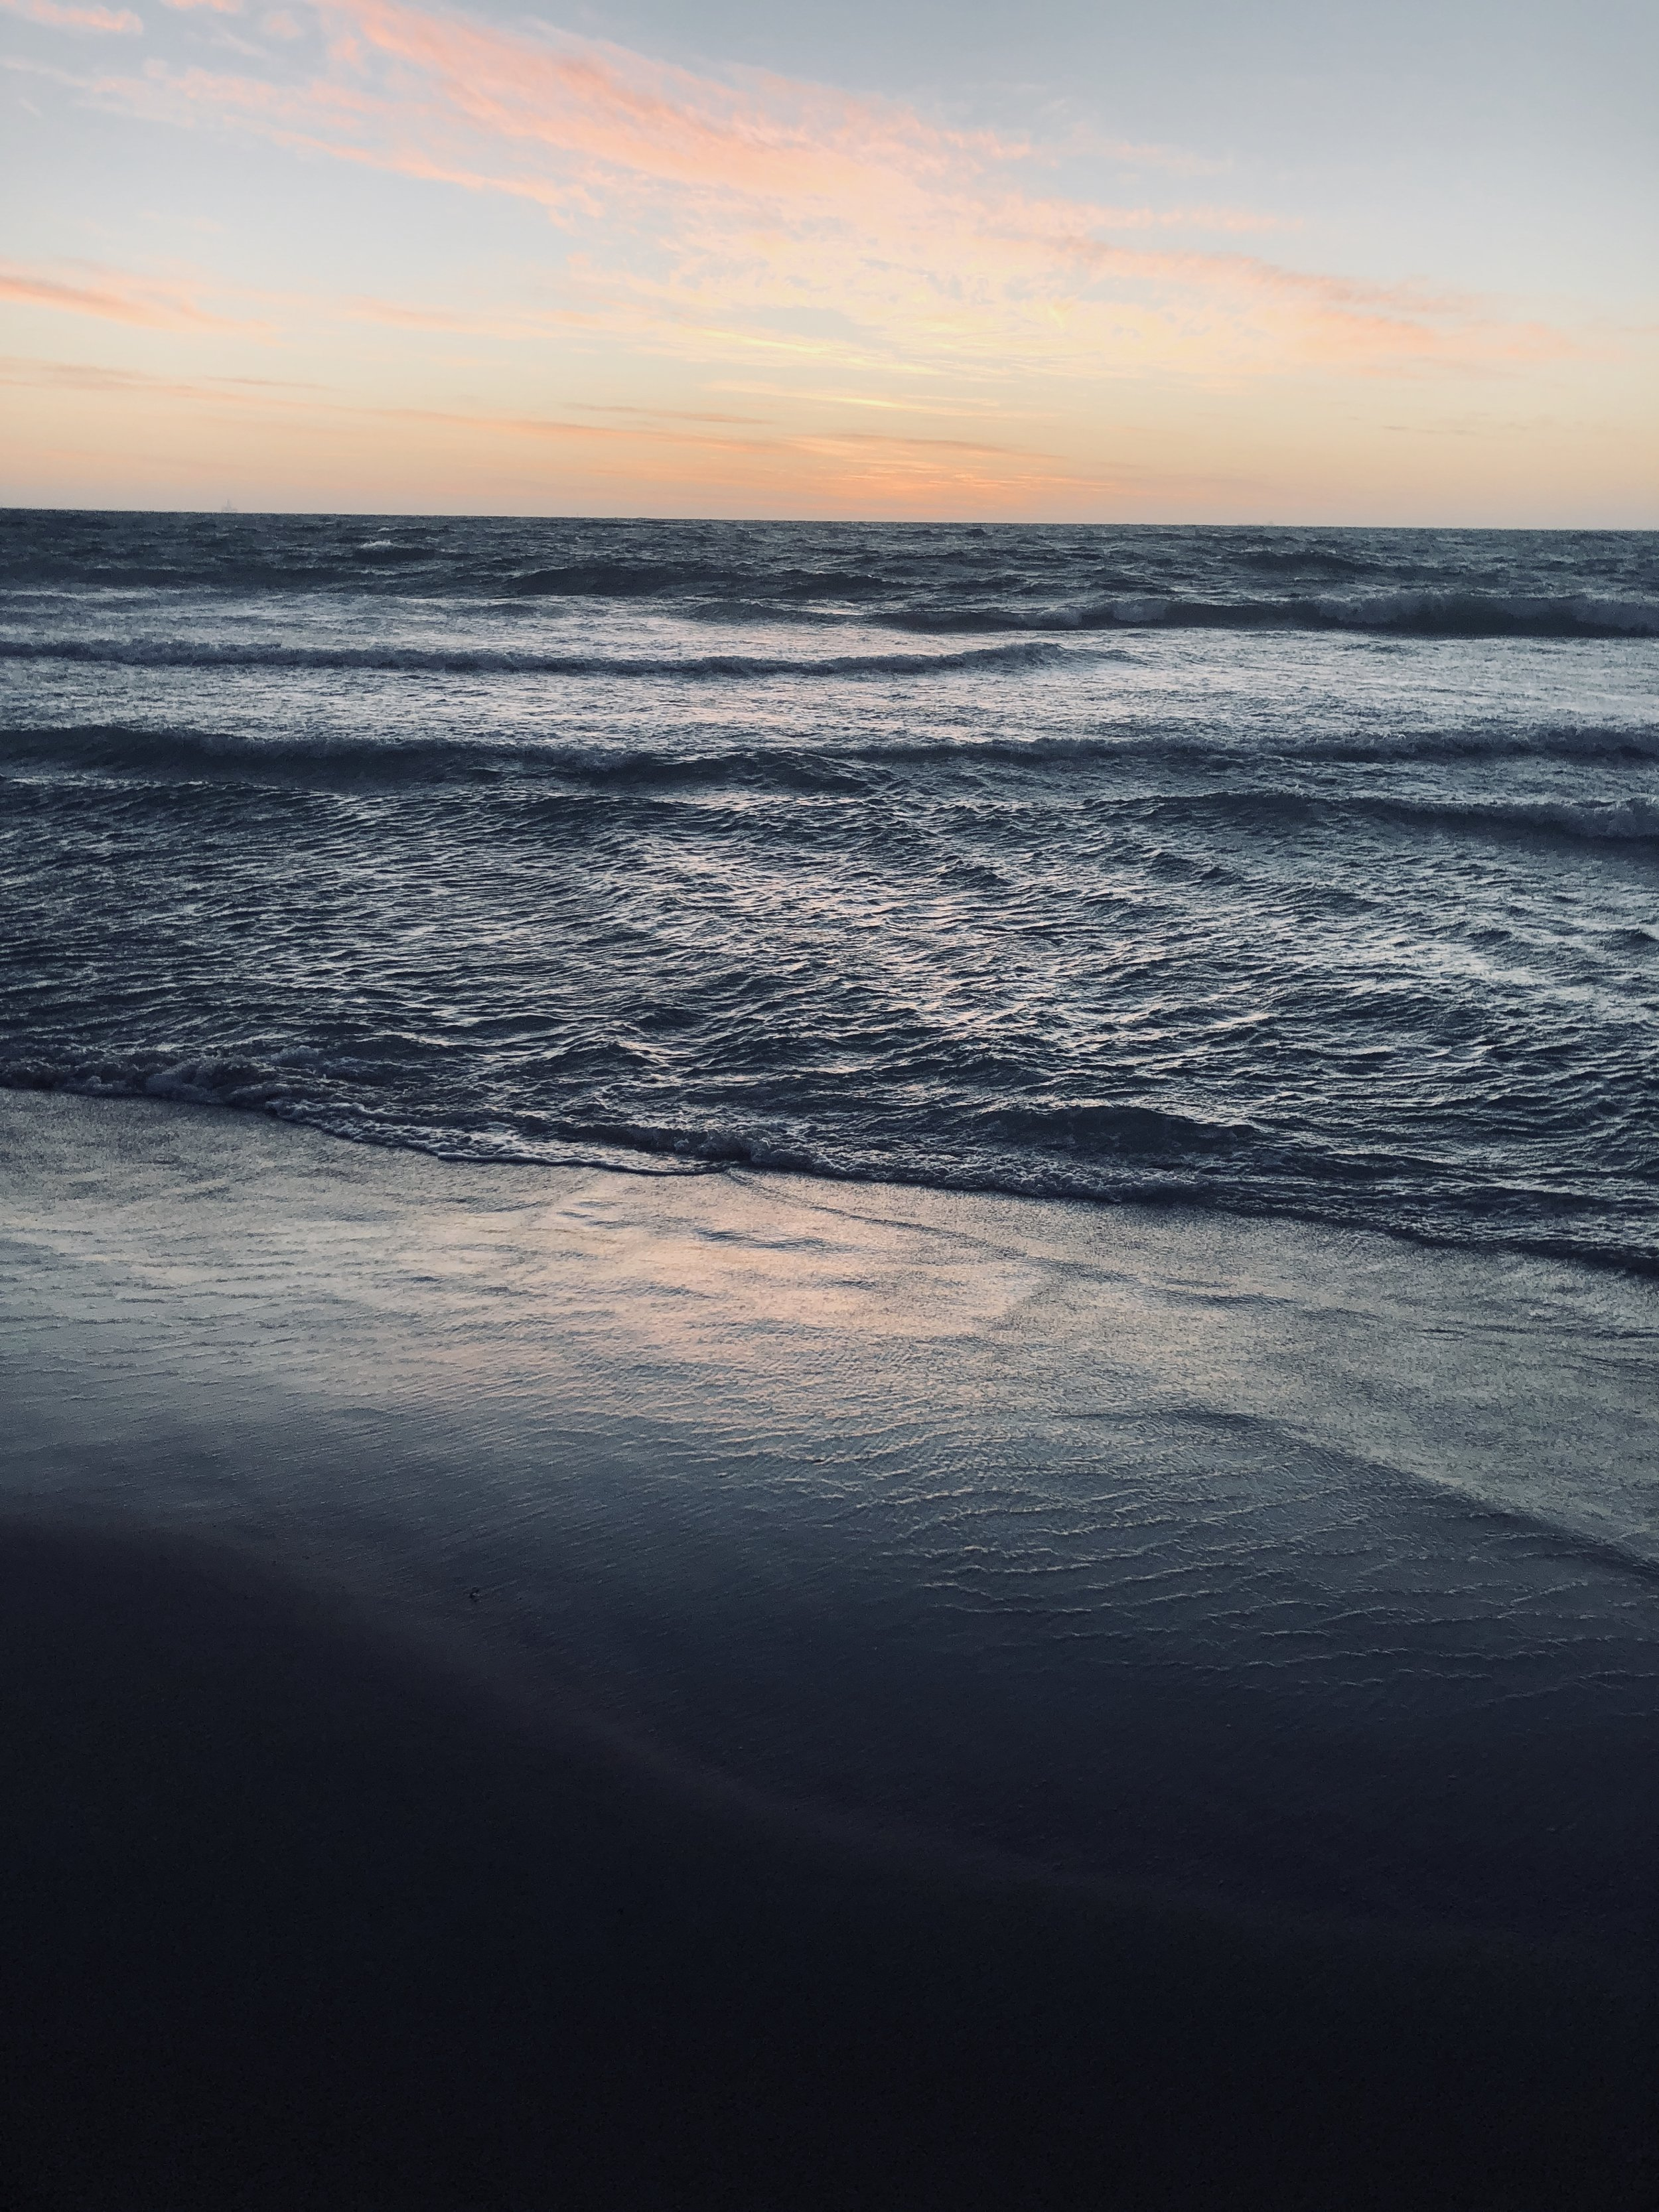 Tangaroa is in essence;the energy that has manifested physically,as the sea. Hana Photography, 2018.